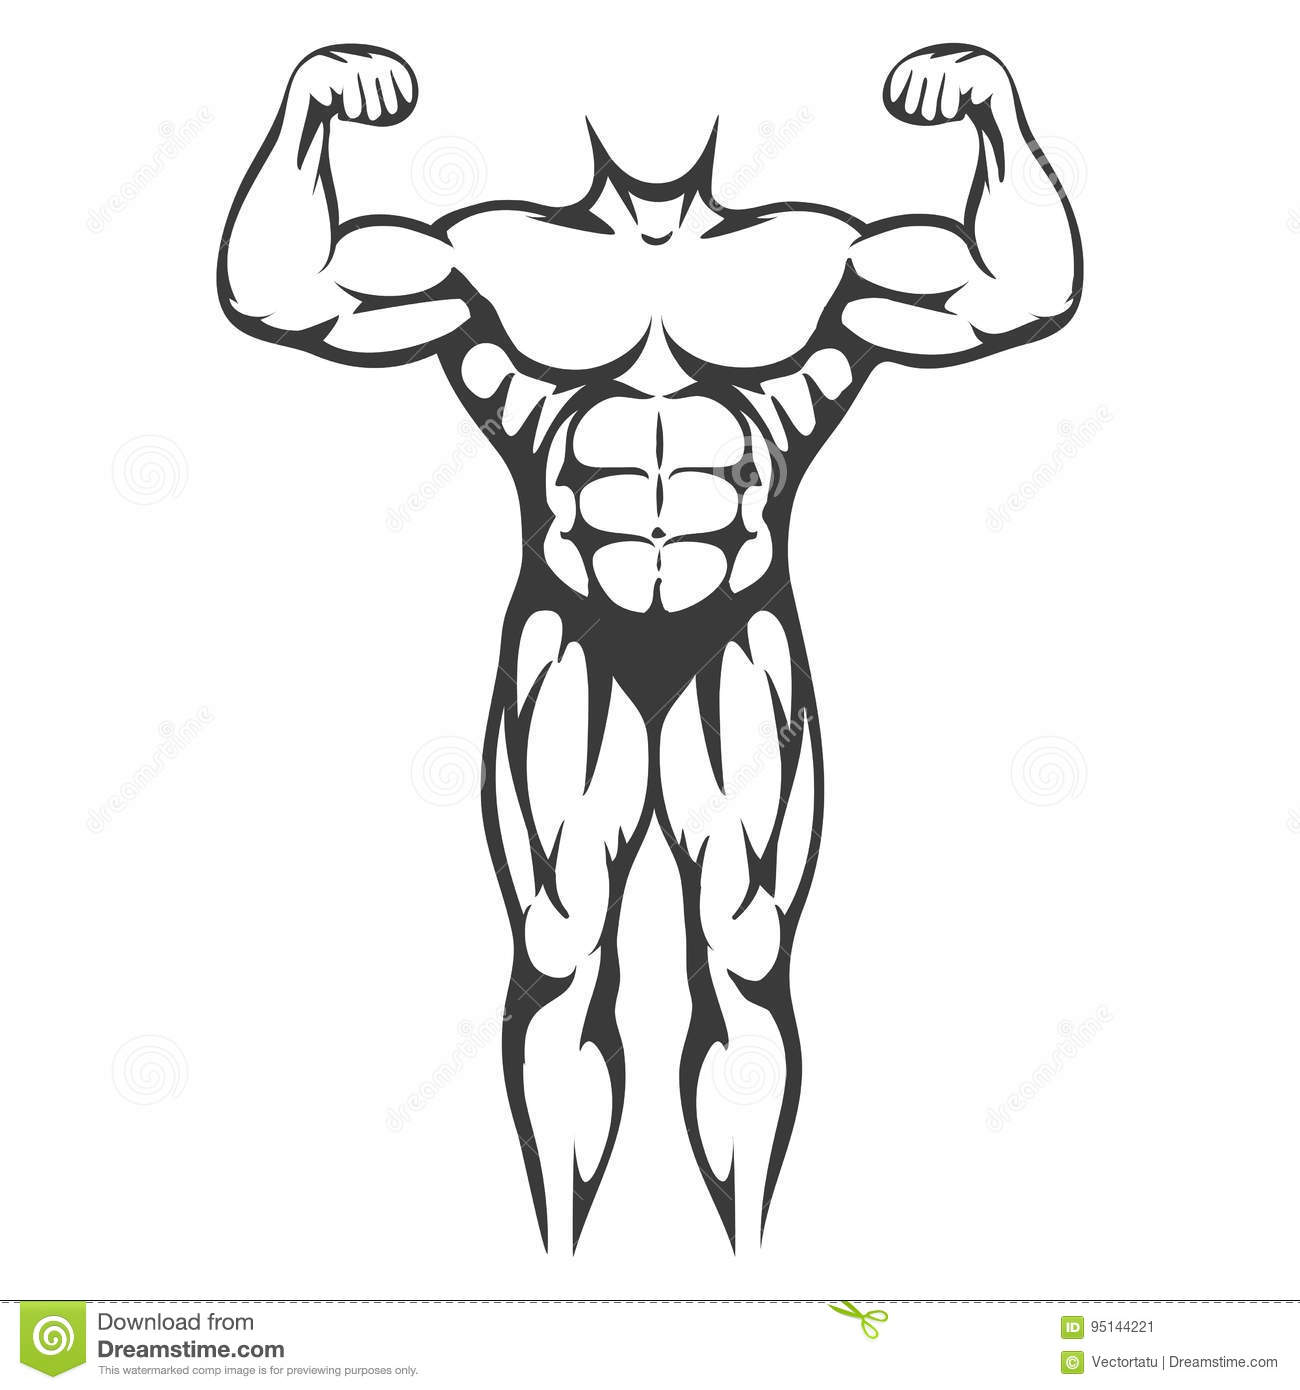 Male Body Muscle Black Silhouette Stock Vector